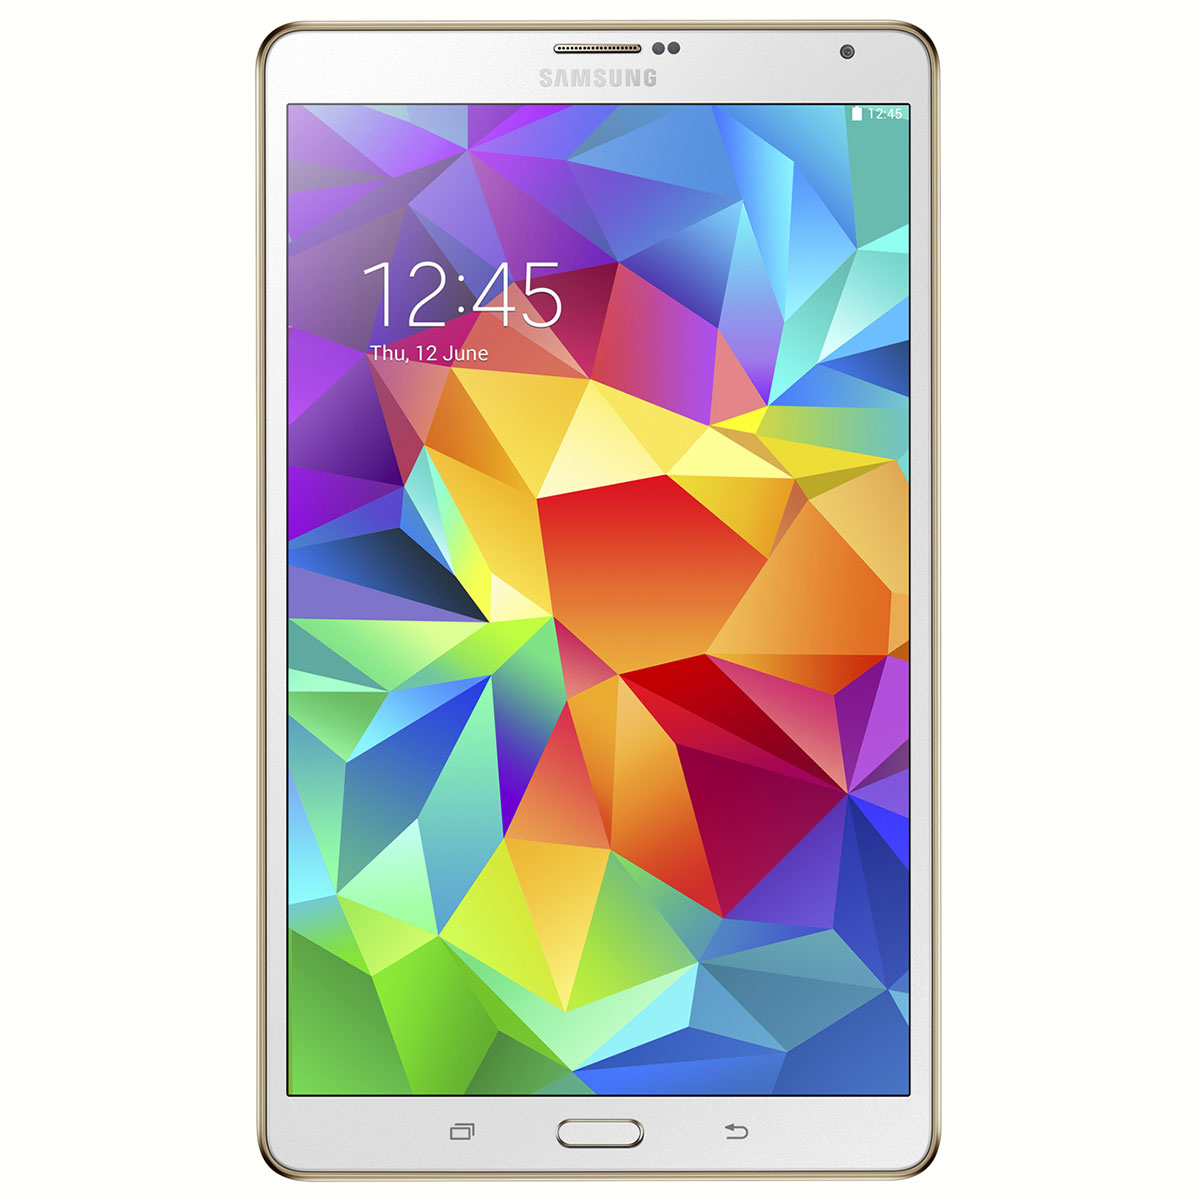 samsung galaxy tab 4 7 sm t230 8 go blanc tablette tactile samsung sur ldlc. Black Bedroom Furniture Sets. Home Design Ideas